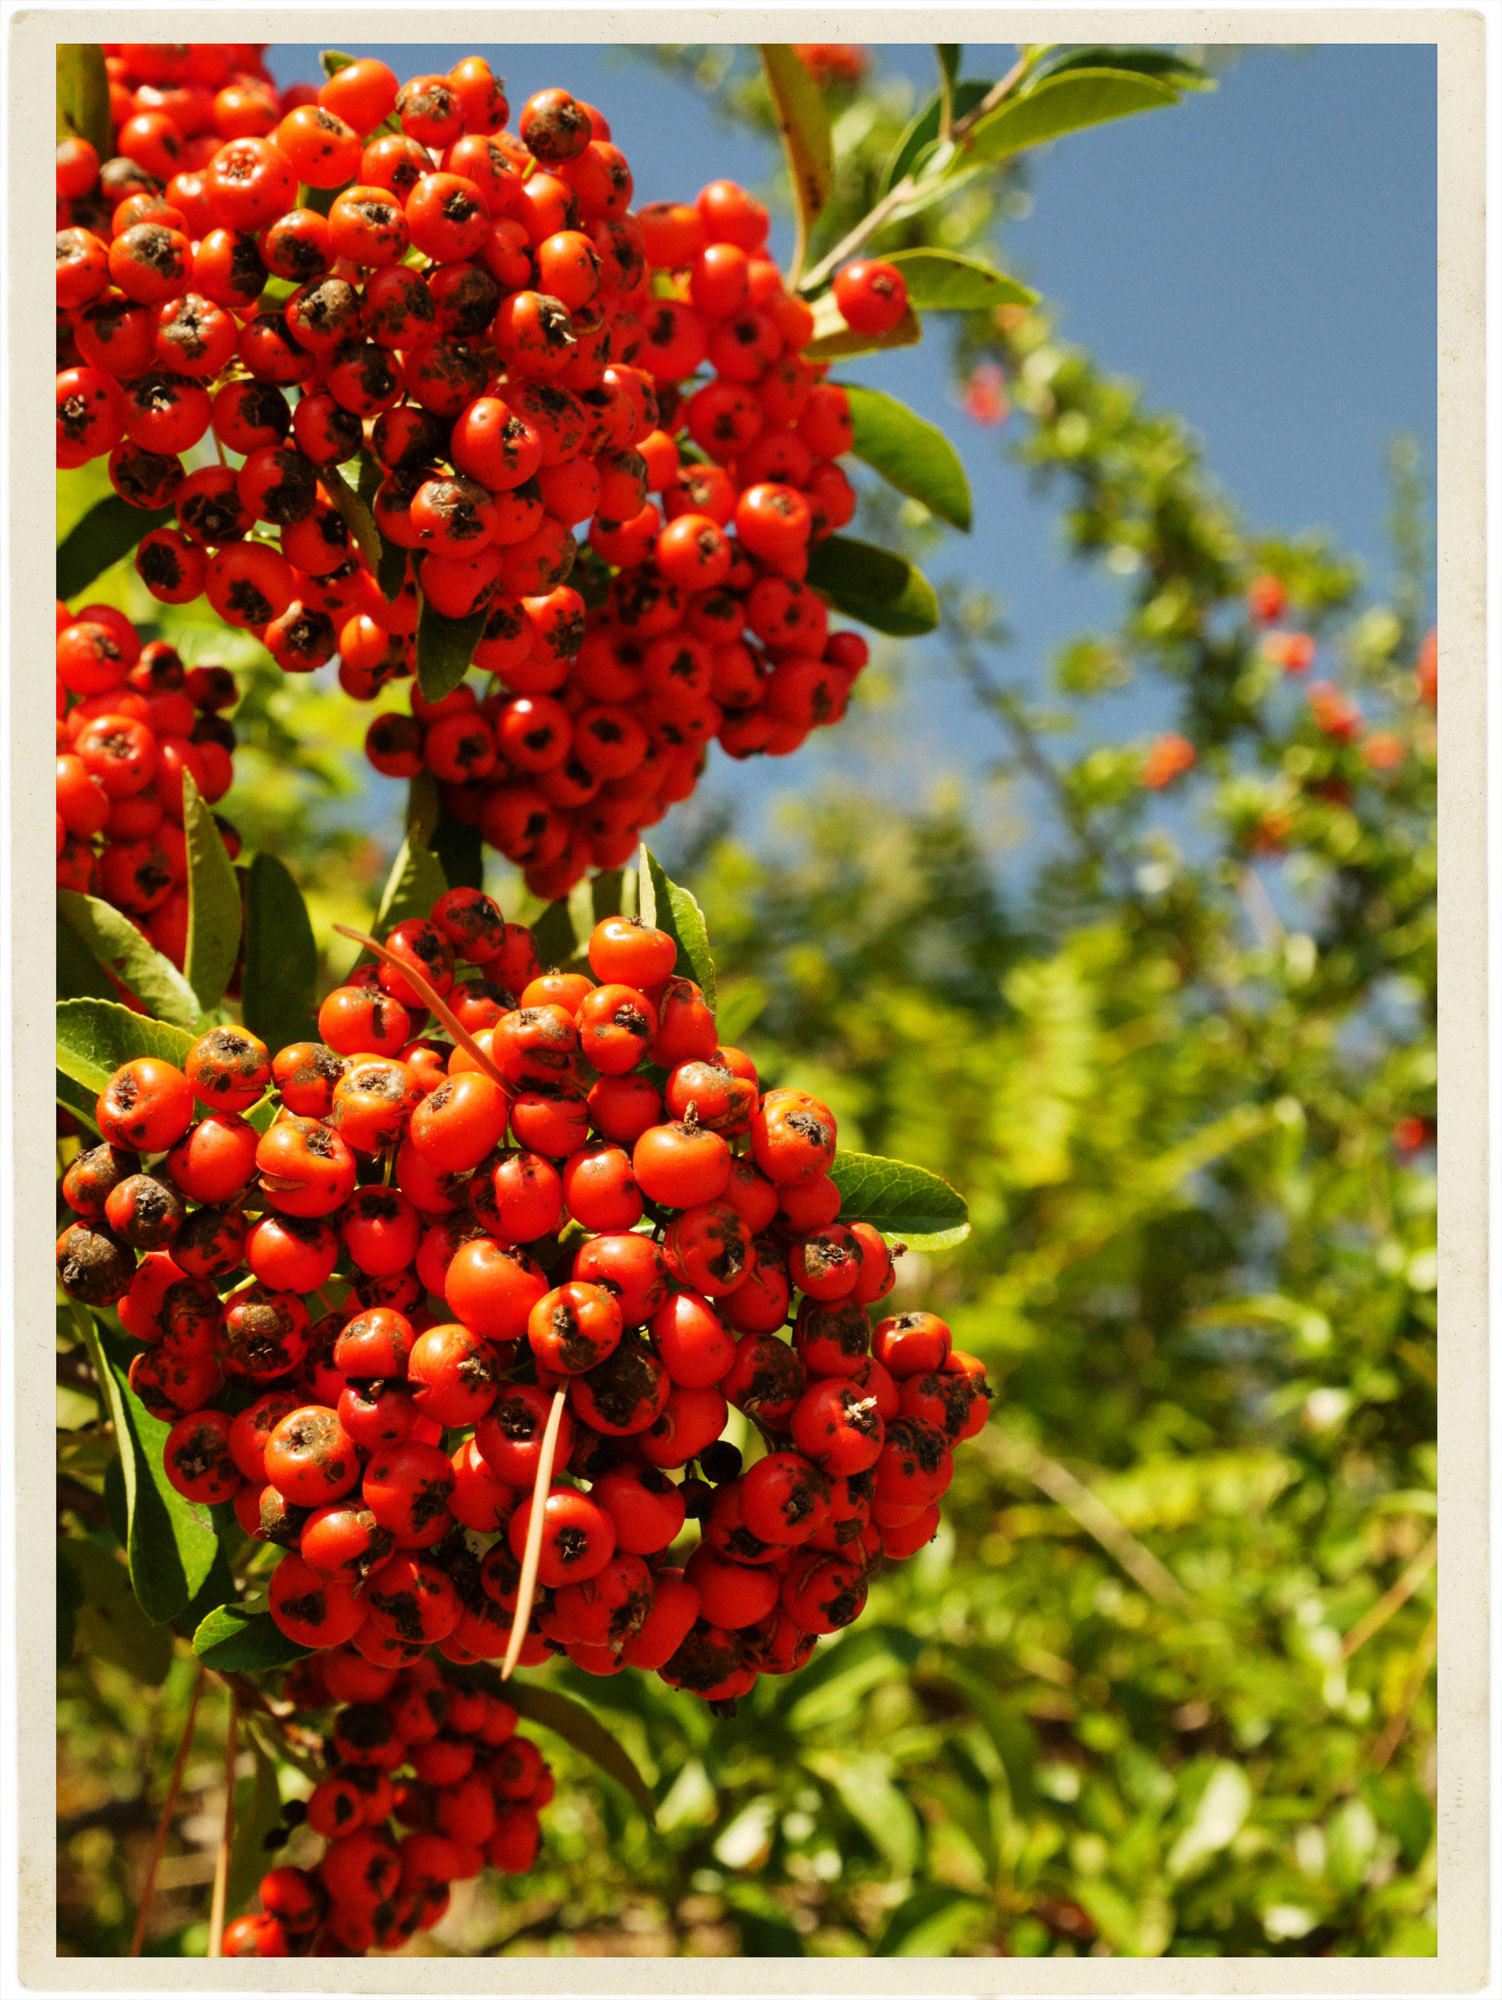 Autumn berries against a perfect blue sky.